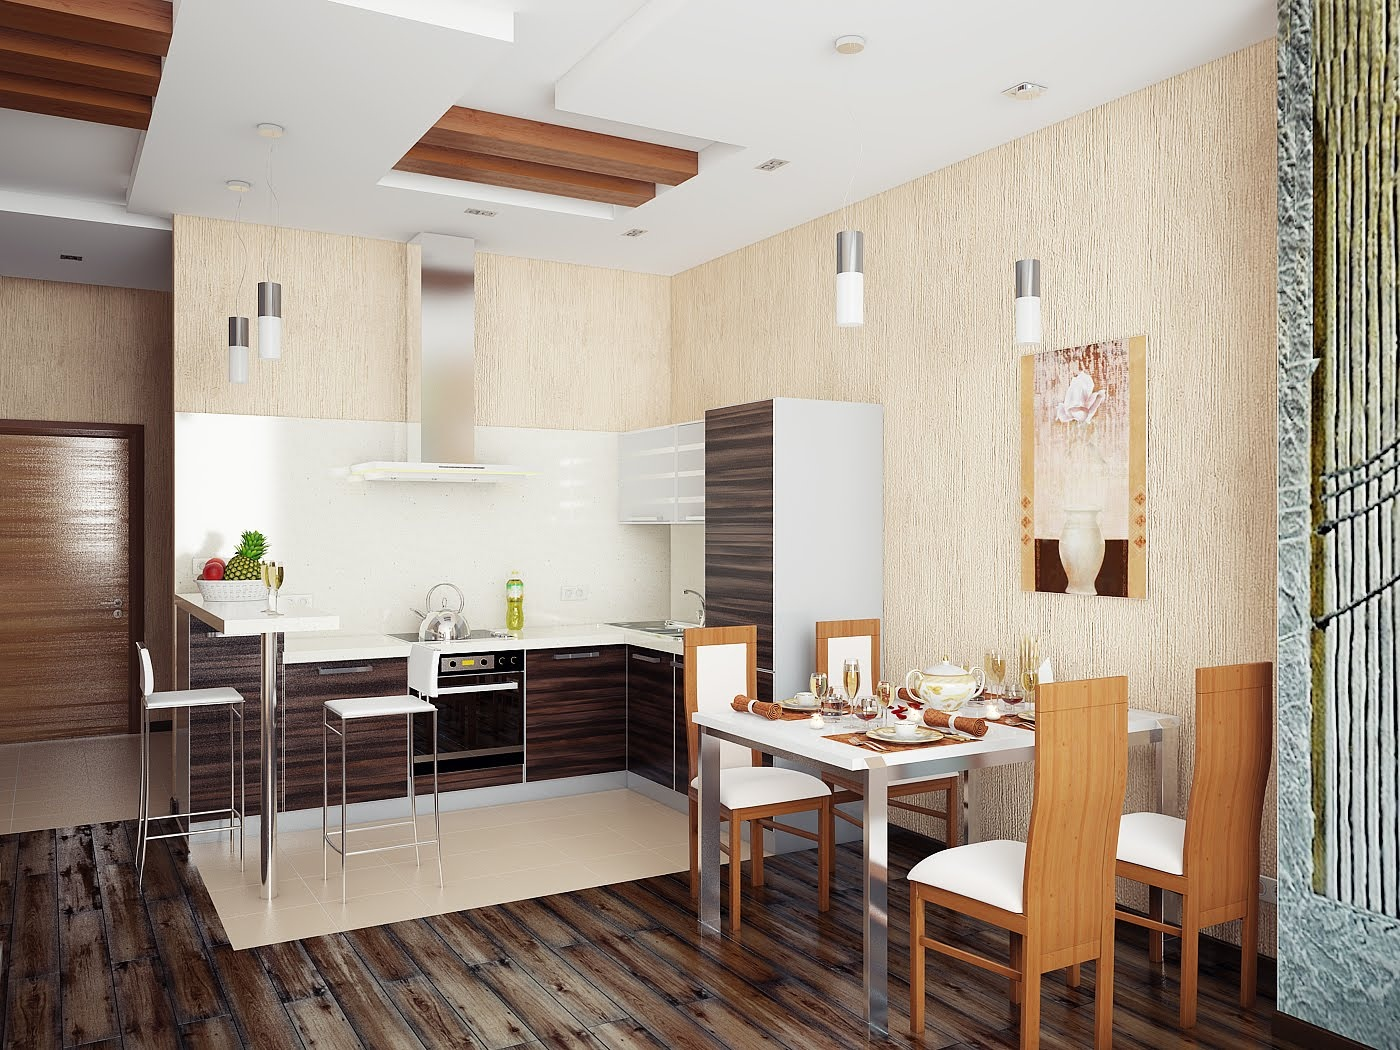 Kitchen Dining Design Photos Kitchen Dining Designs Inspiration And Ideas